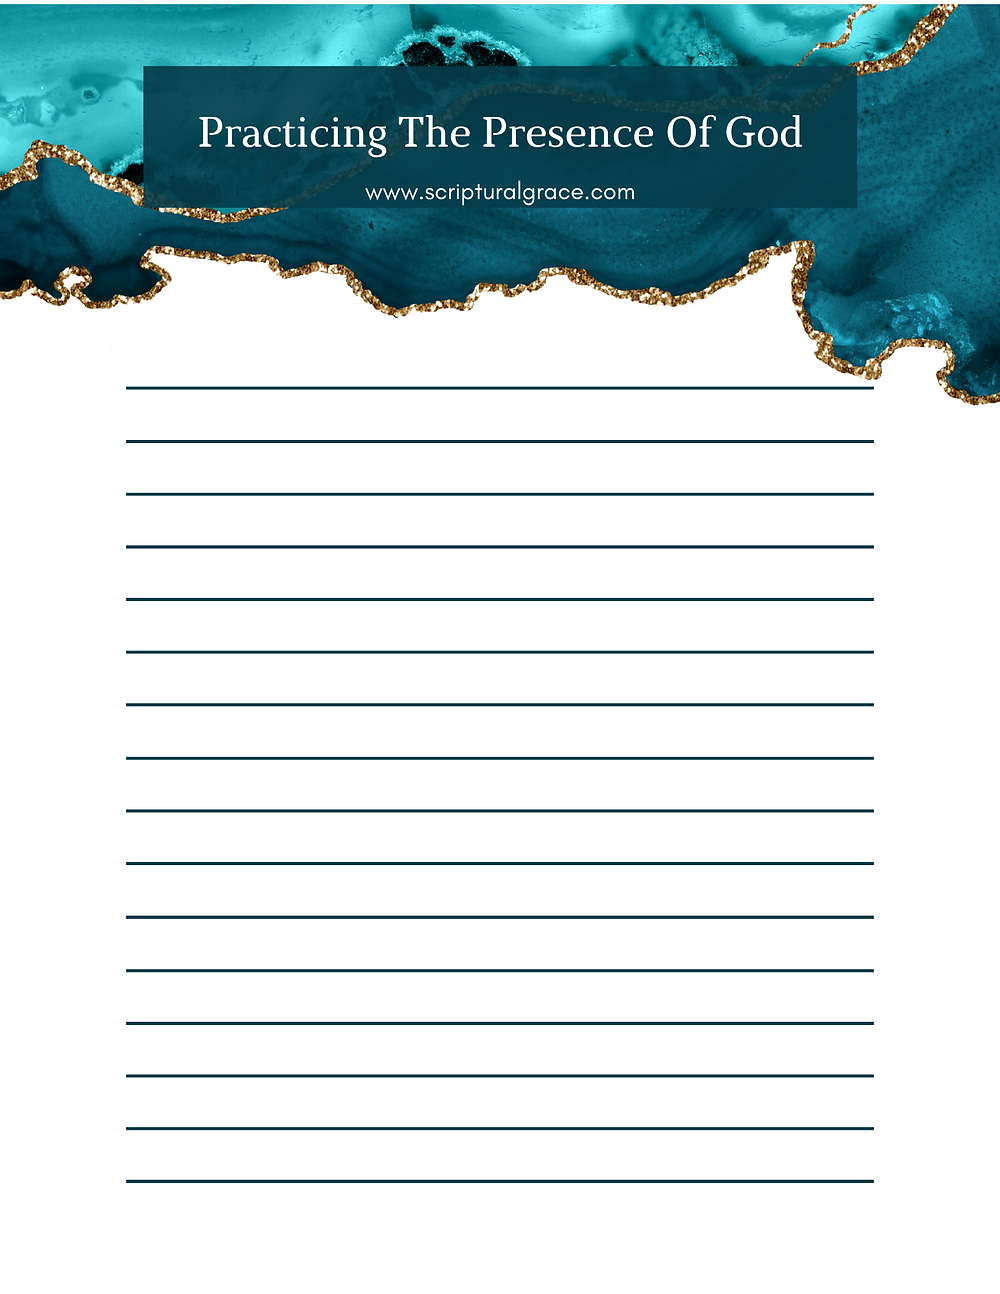 FREE PRACTICING THE PRESENCE OF GOD BIBLE STUDY PRINTABLE